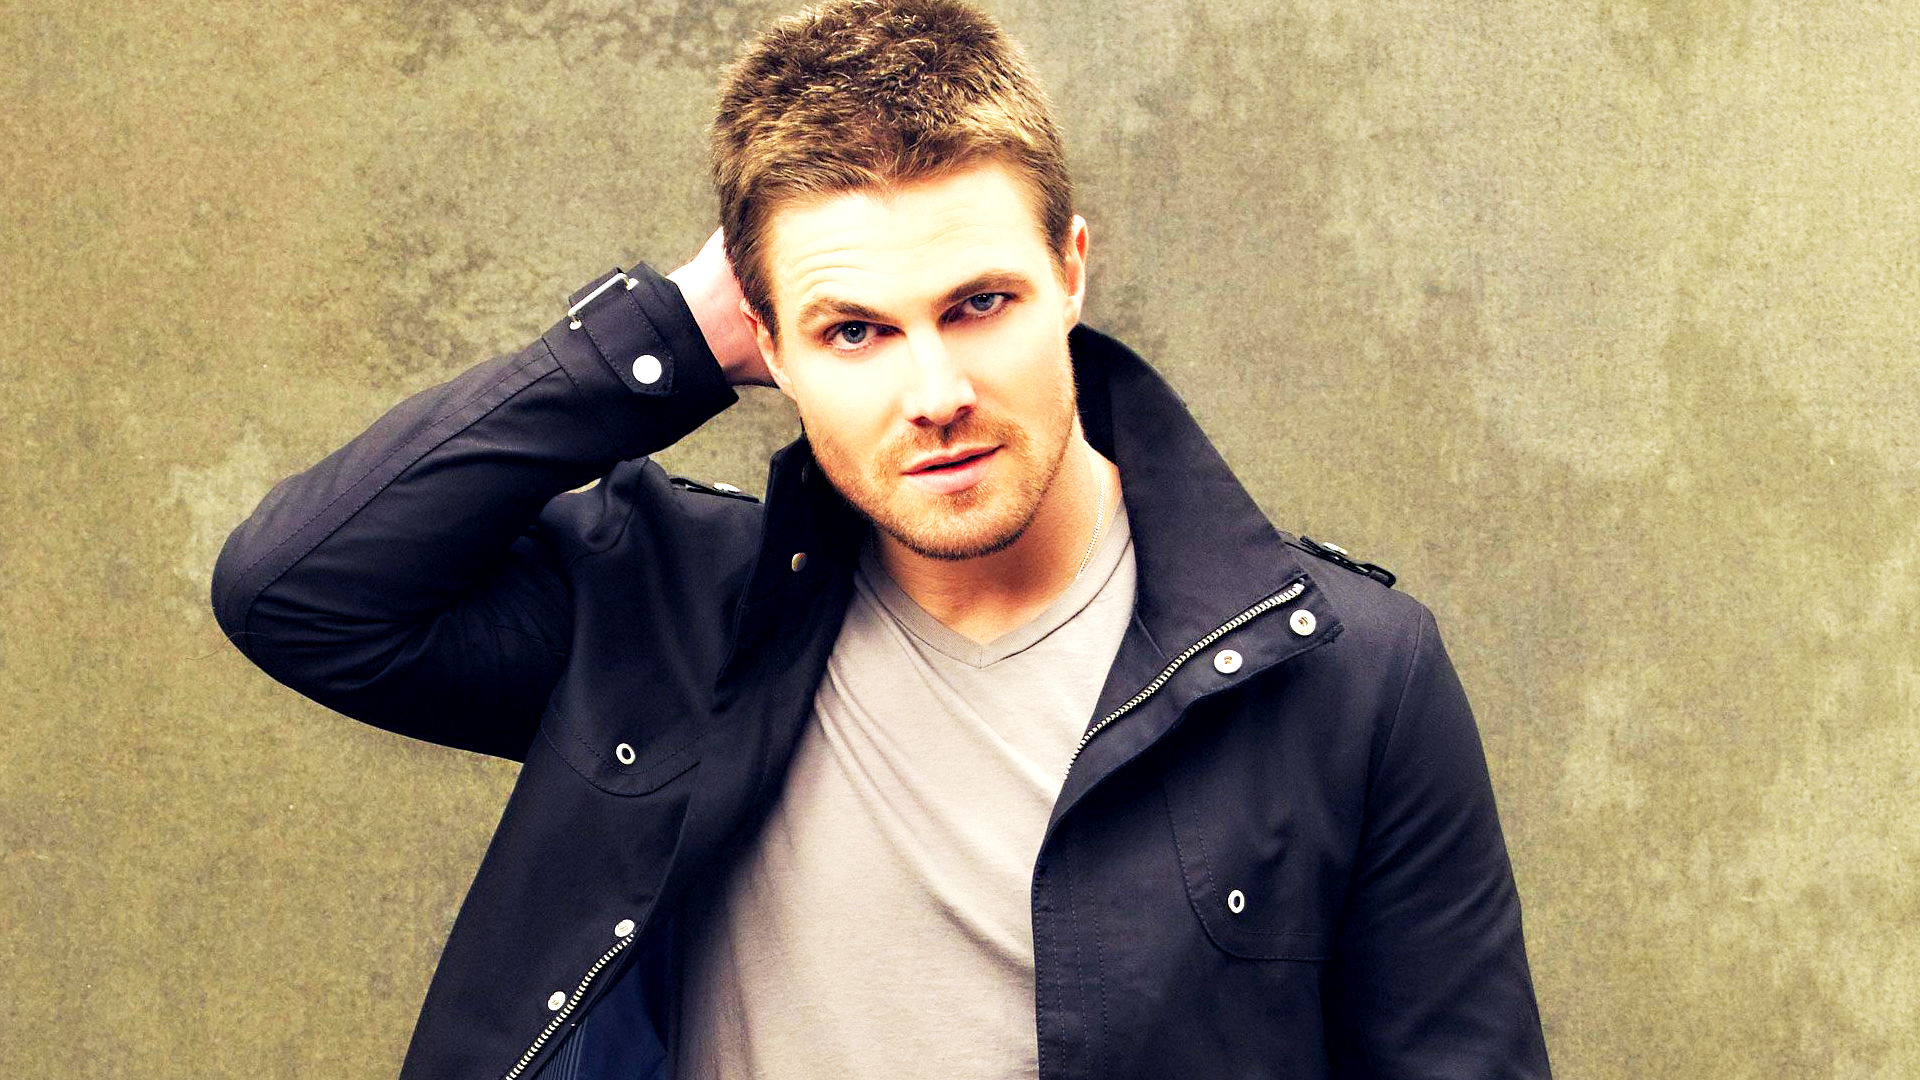 Stephen Amell WallpaperStephen Amell